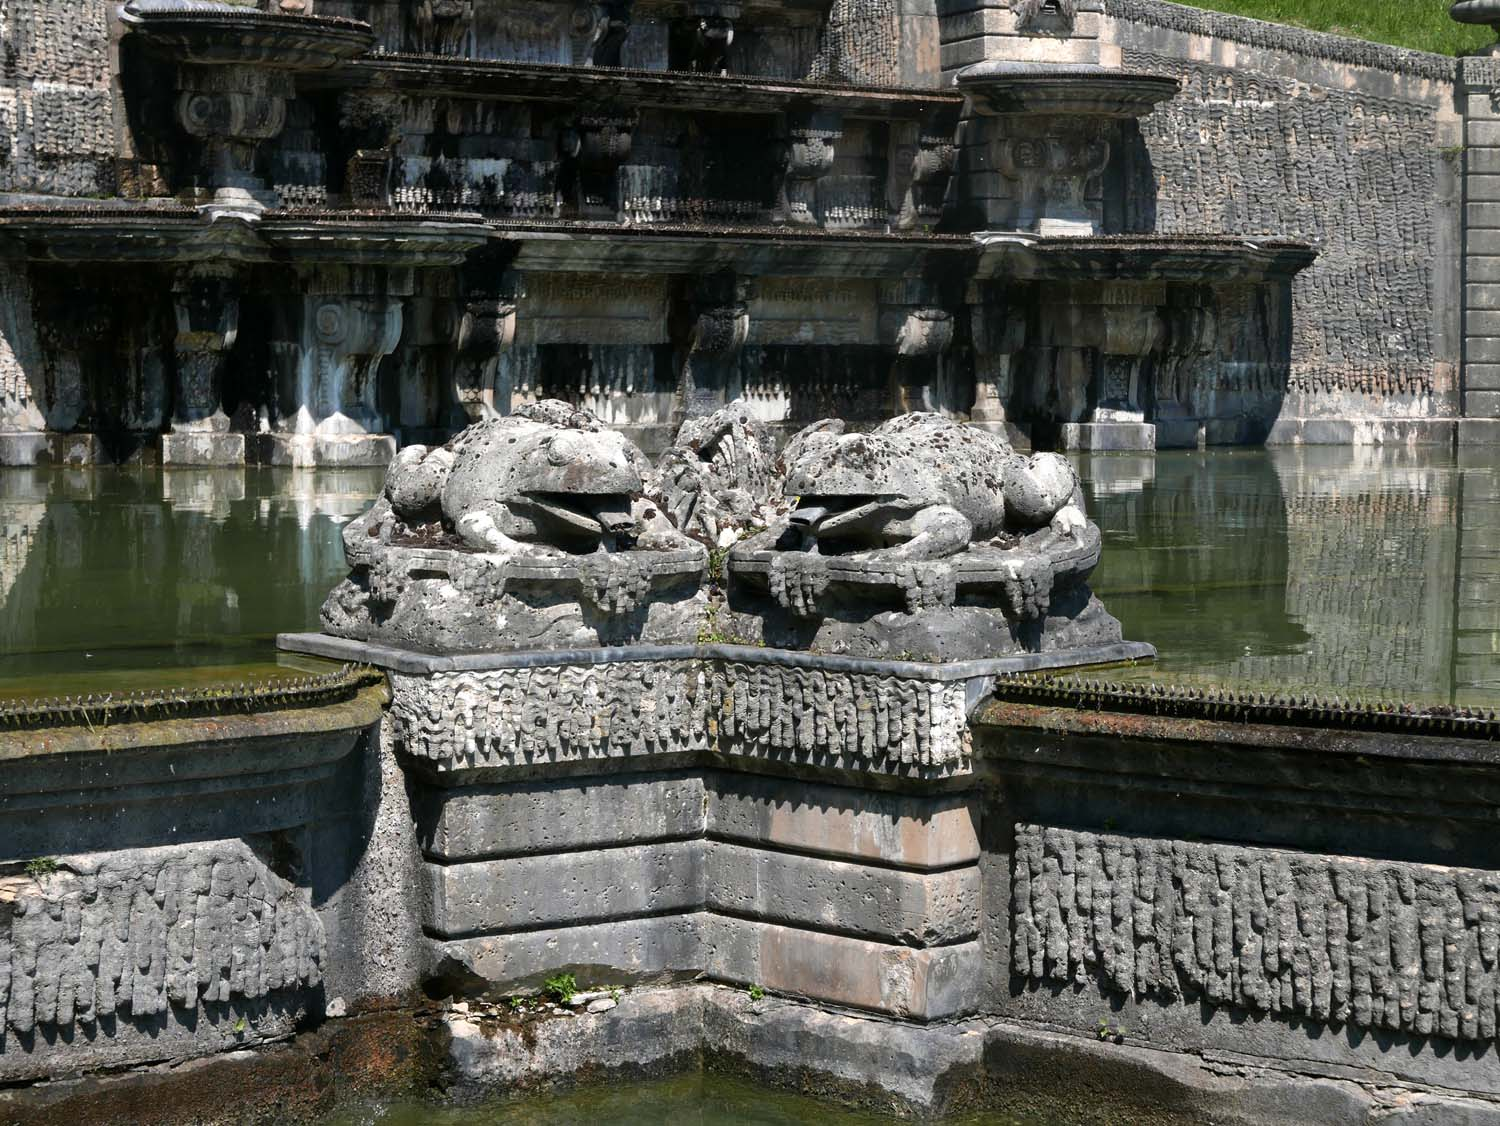 Fountain frogs